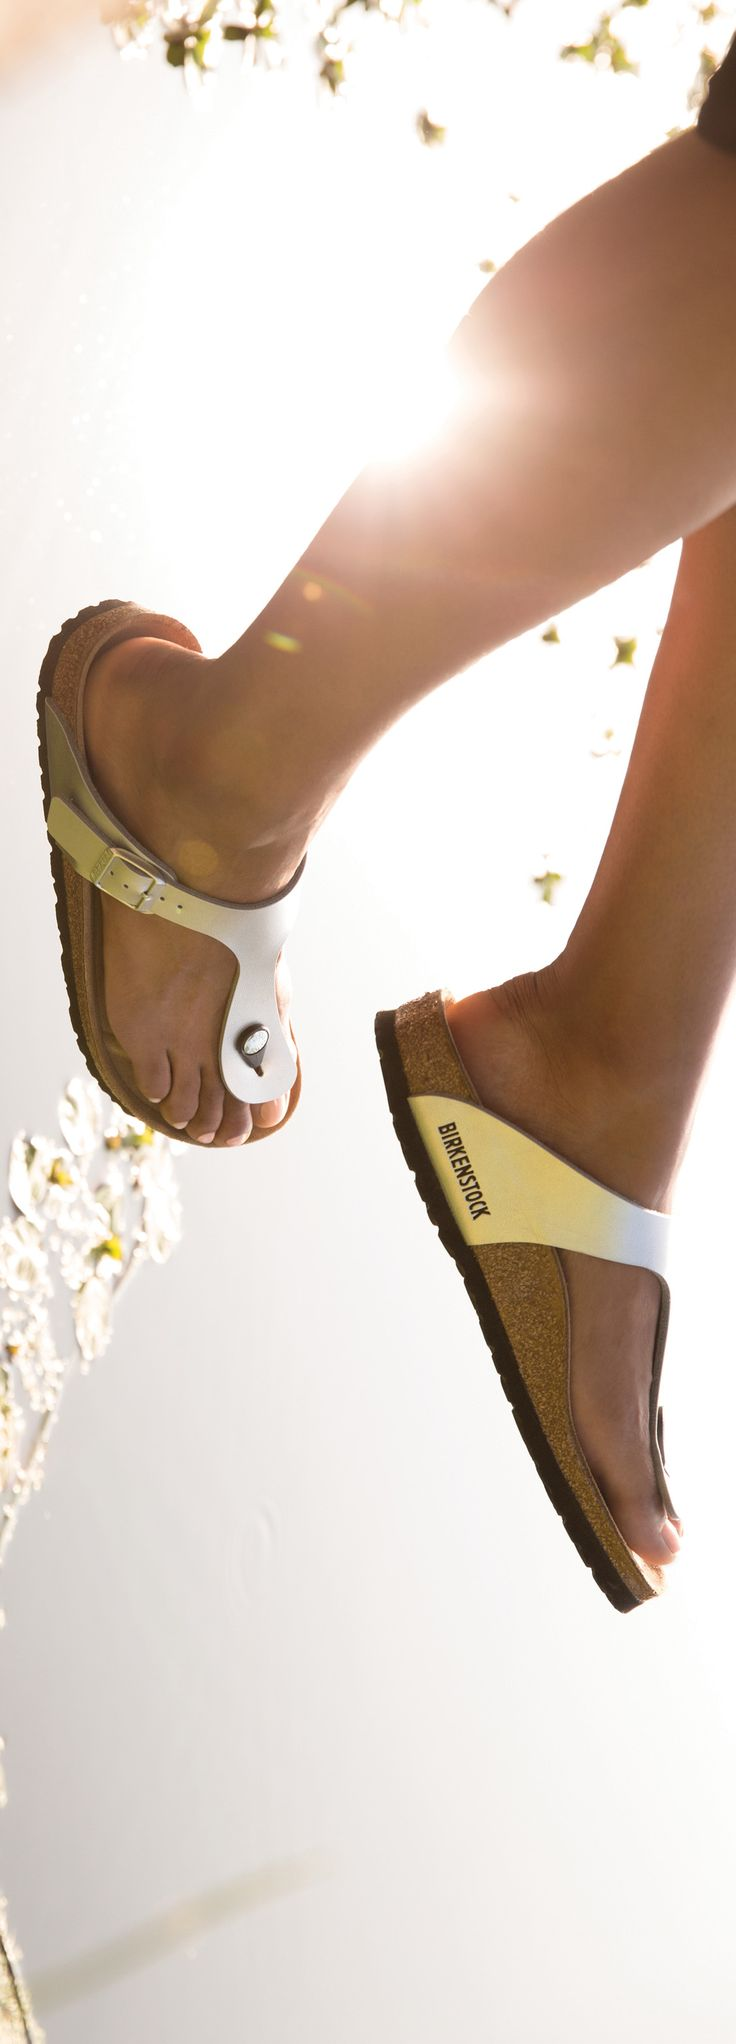 The Birkenstock Gizeh is perfect for days spent in the sun.